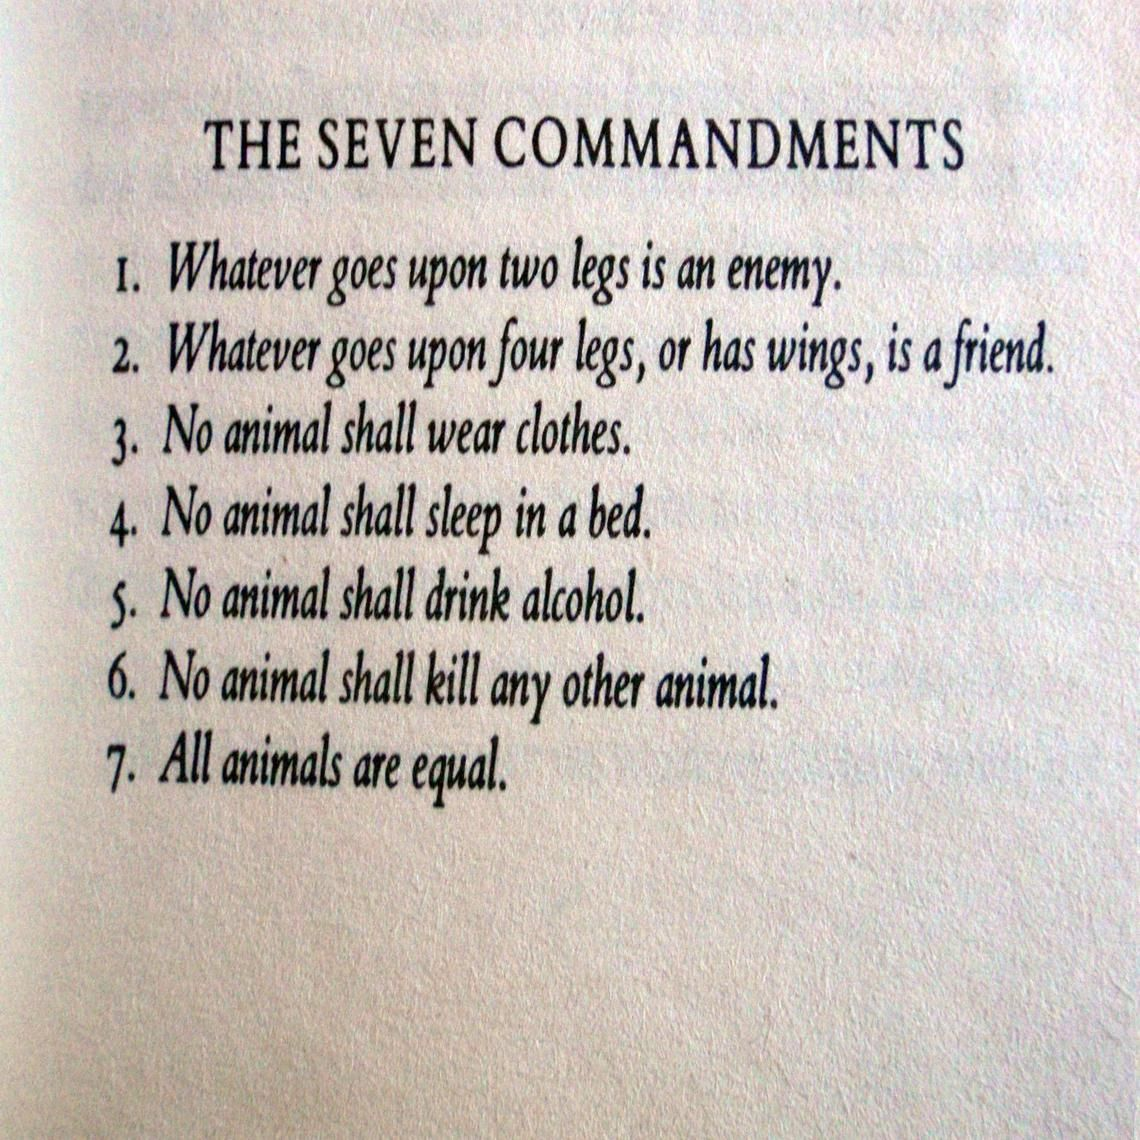 george orwell s animal farm the commandments  george orwell s animal farm the 7 commandments